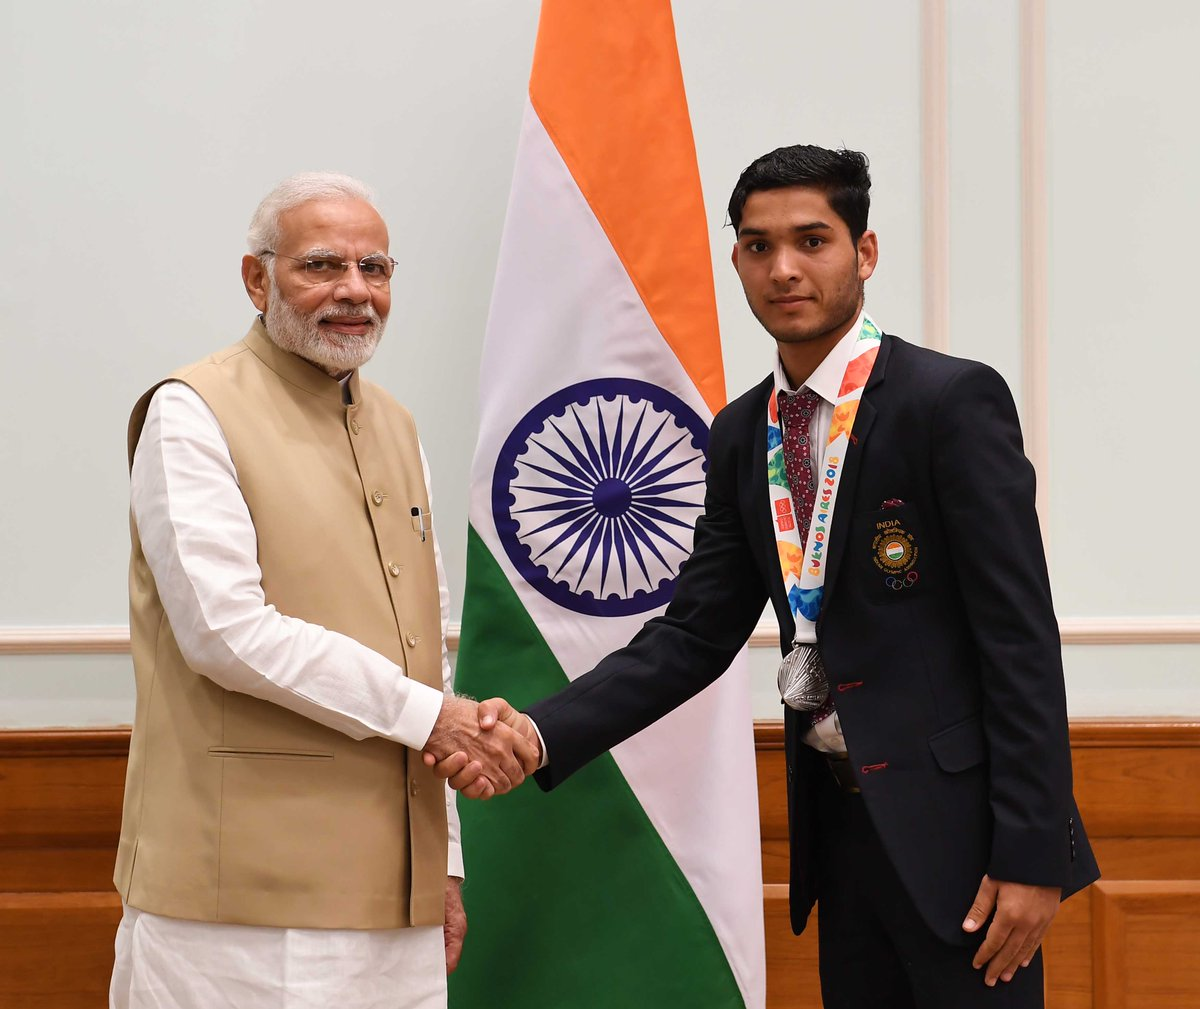 Uttarakhand's Suraj Panwar has made India proud on the world stage by securing a Silver medal in the Men's 5000m Race Walk at the 2018 Youth Olympic Games. Many congratulations to him for this accomplishment and may he keep on attaining new milestones!